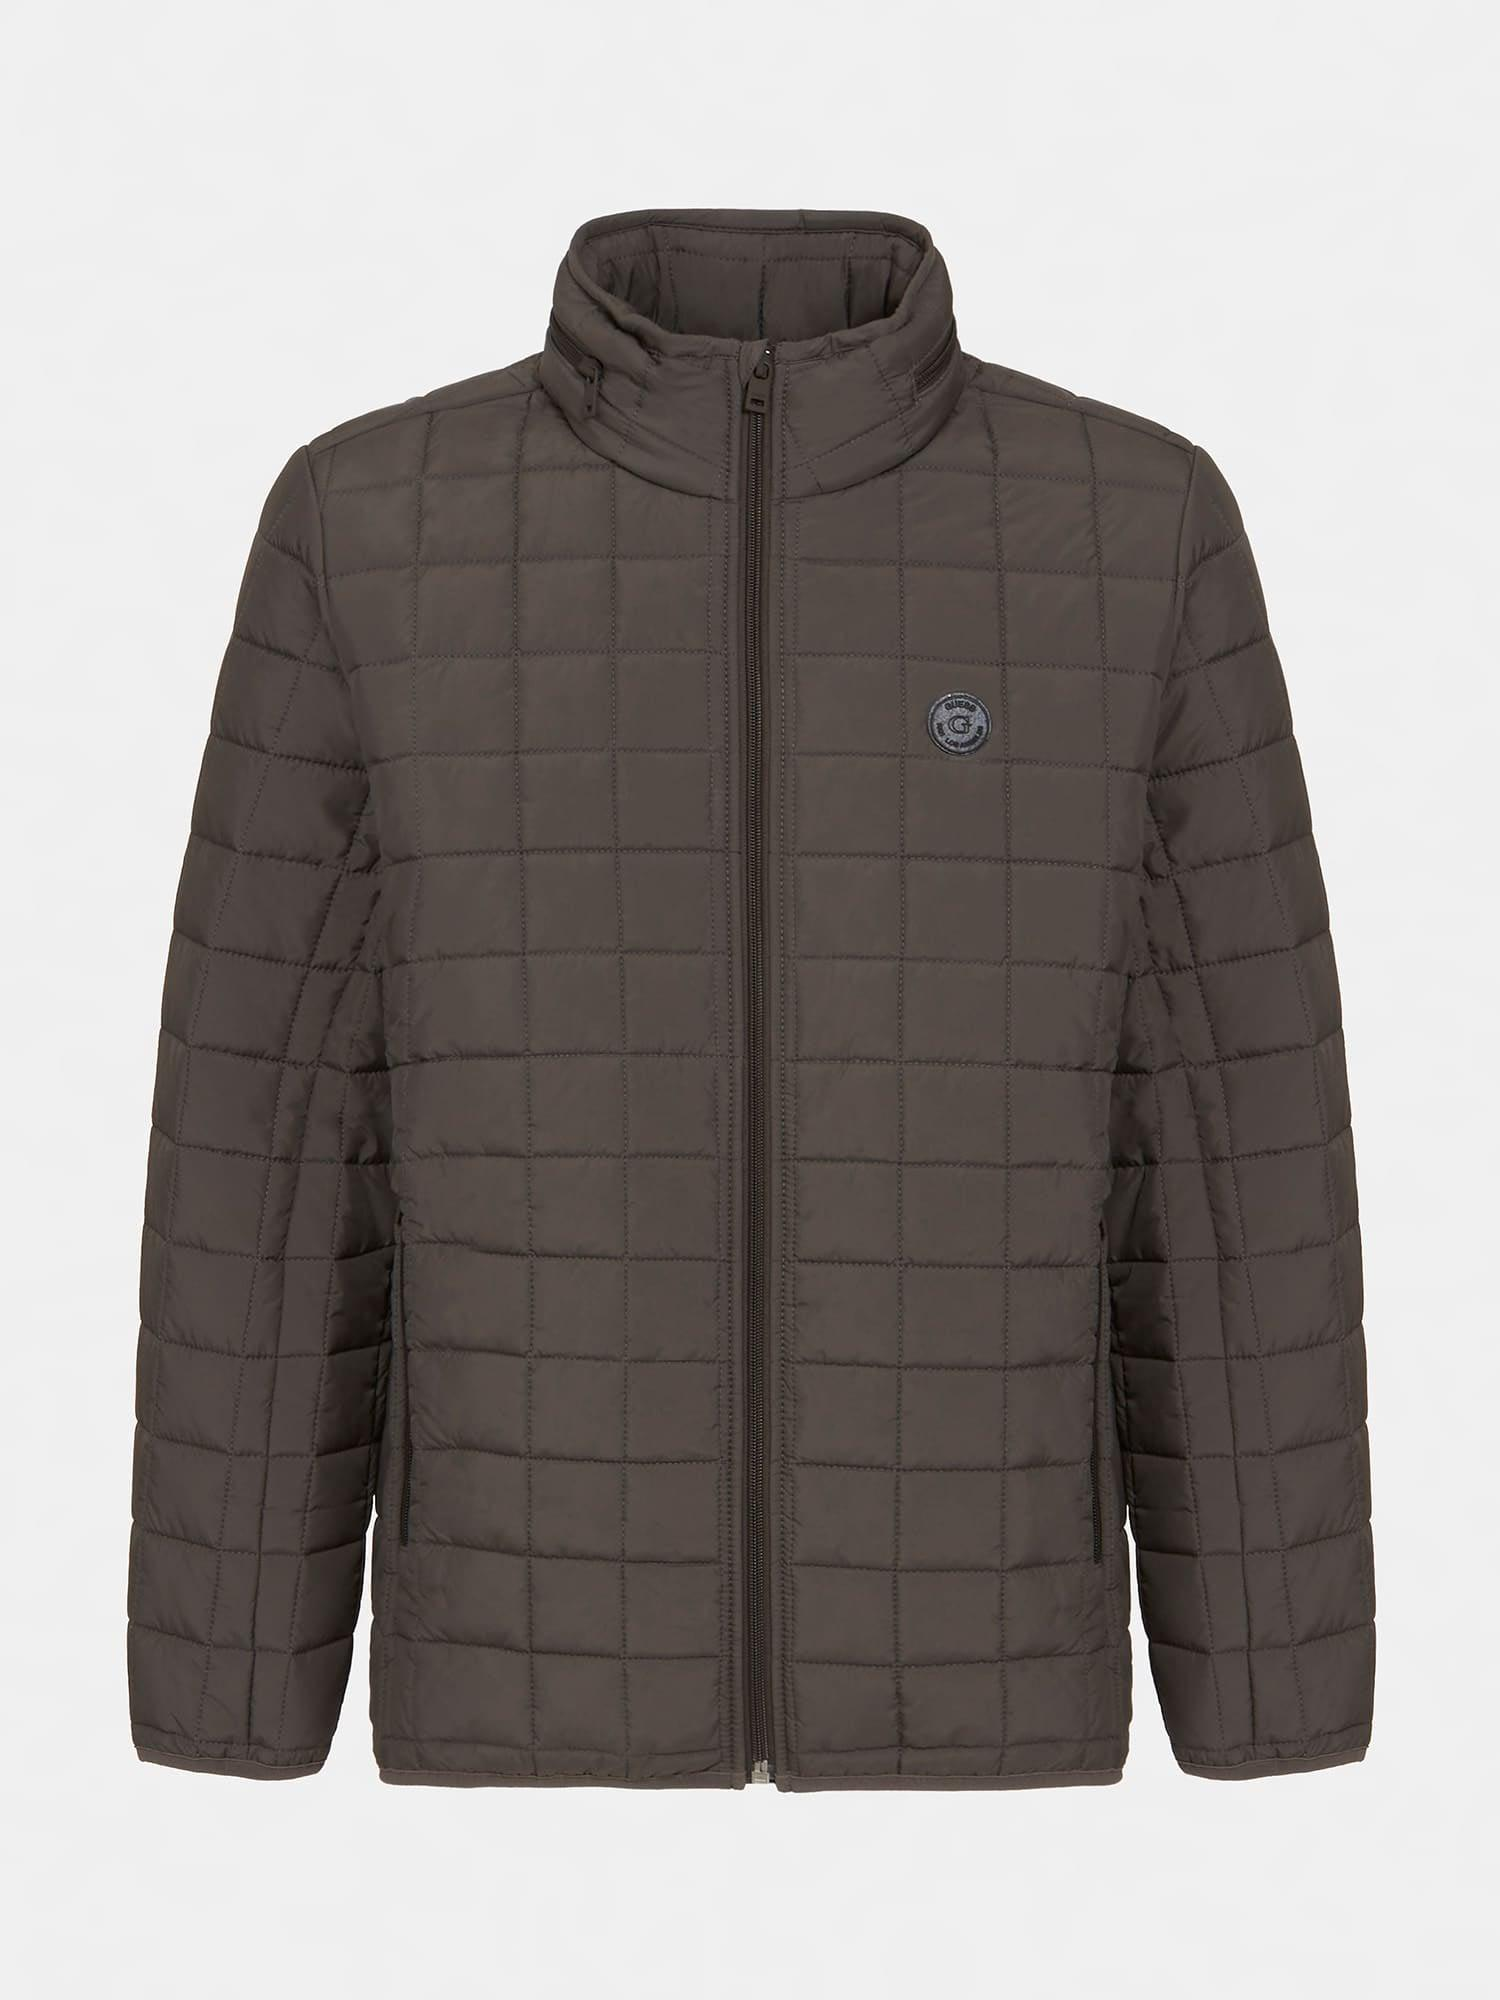 GUESS Guess STEPPJACKE cappuccino